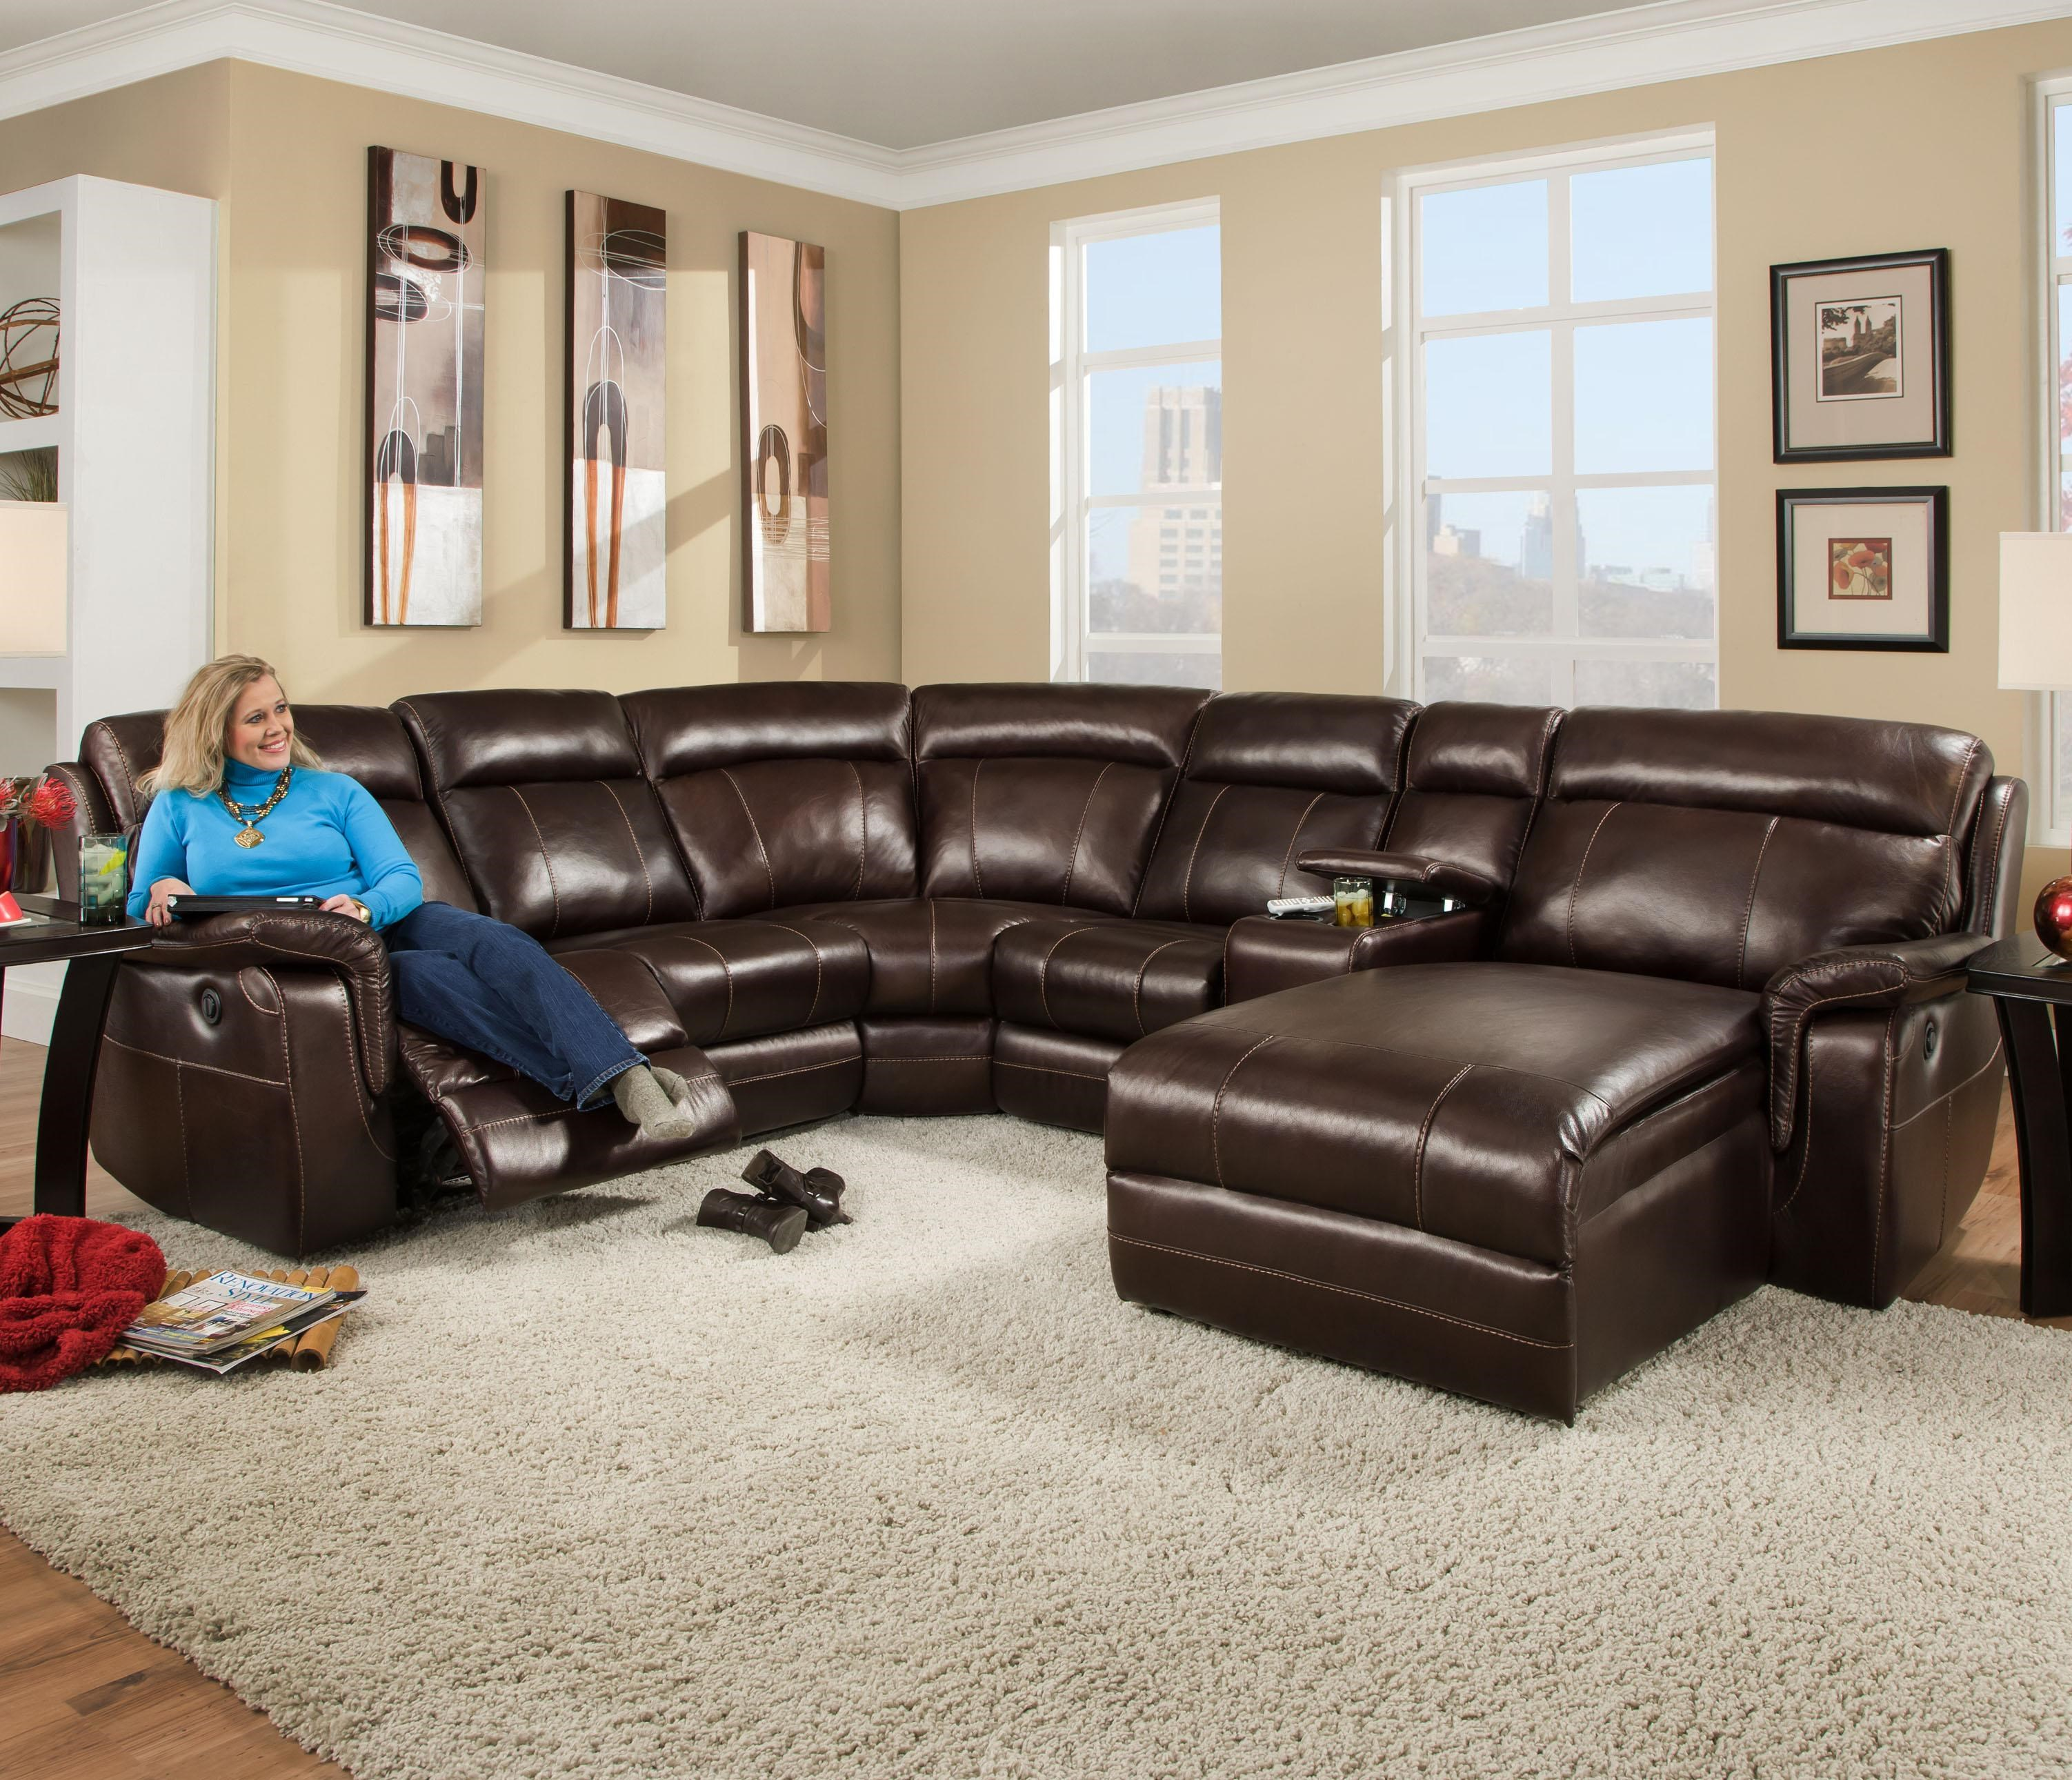 Corinthian 862 Sectional Sofa With 5 Seats (2 Are Wall Away Recliners) And 2